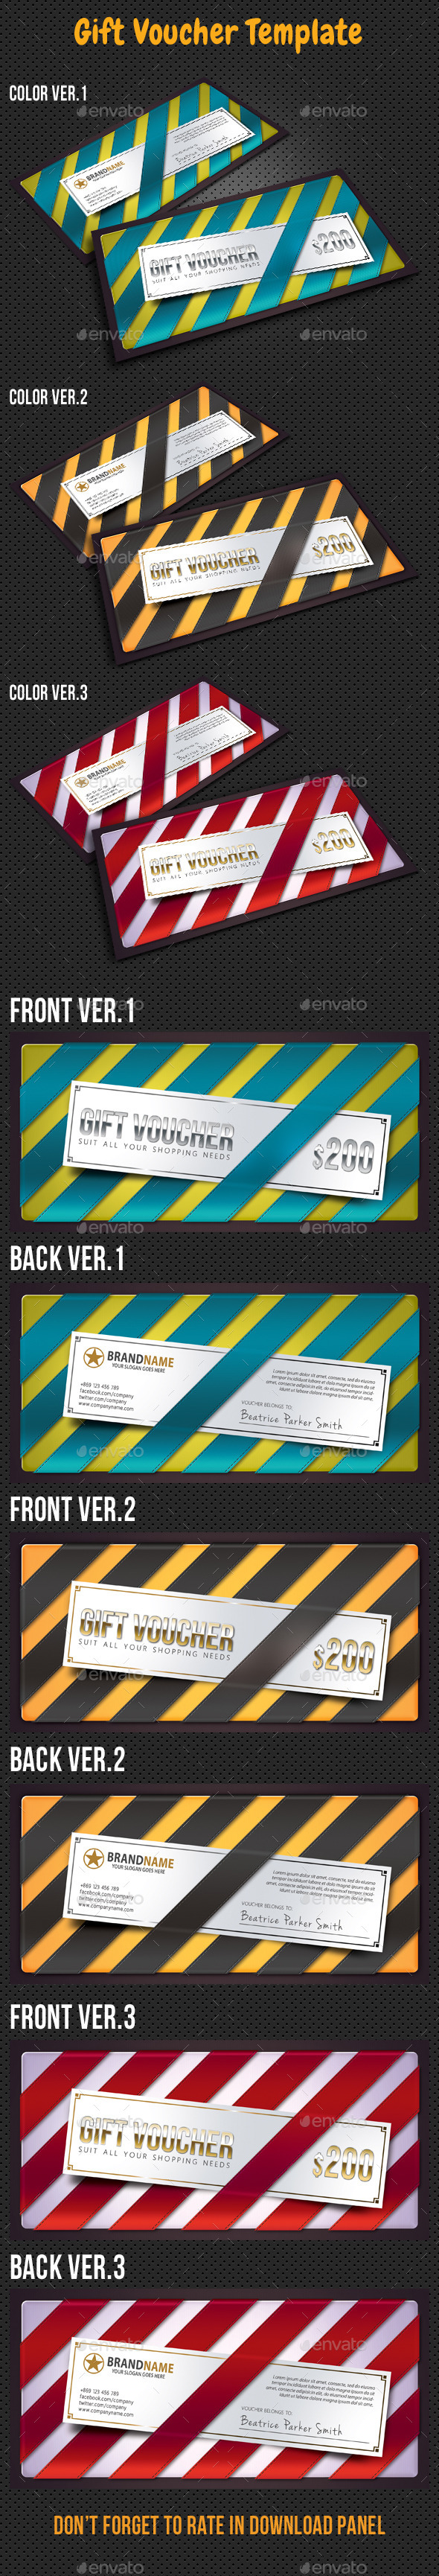 Gift Voucher Card Template - Cards & Invites Print Templates